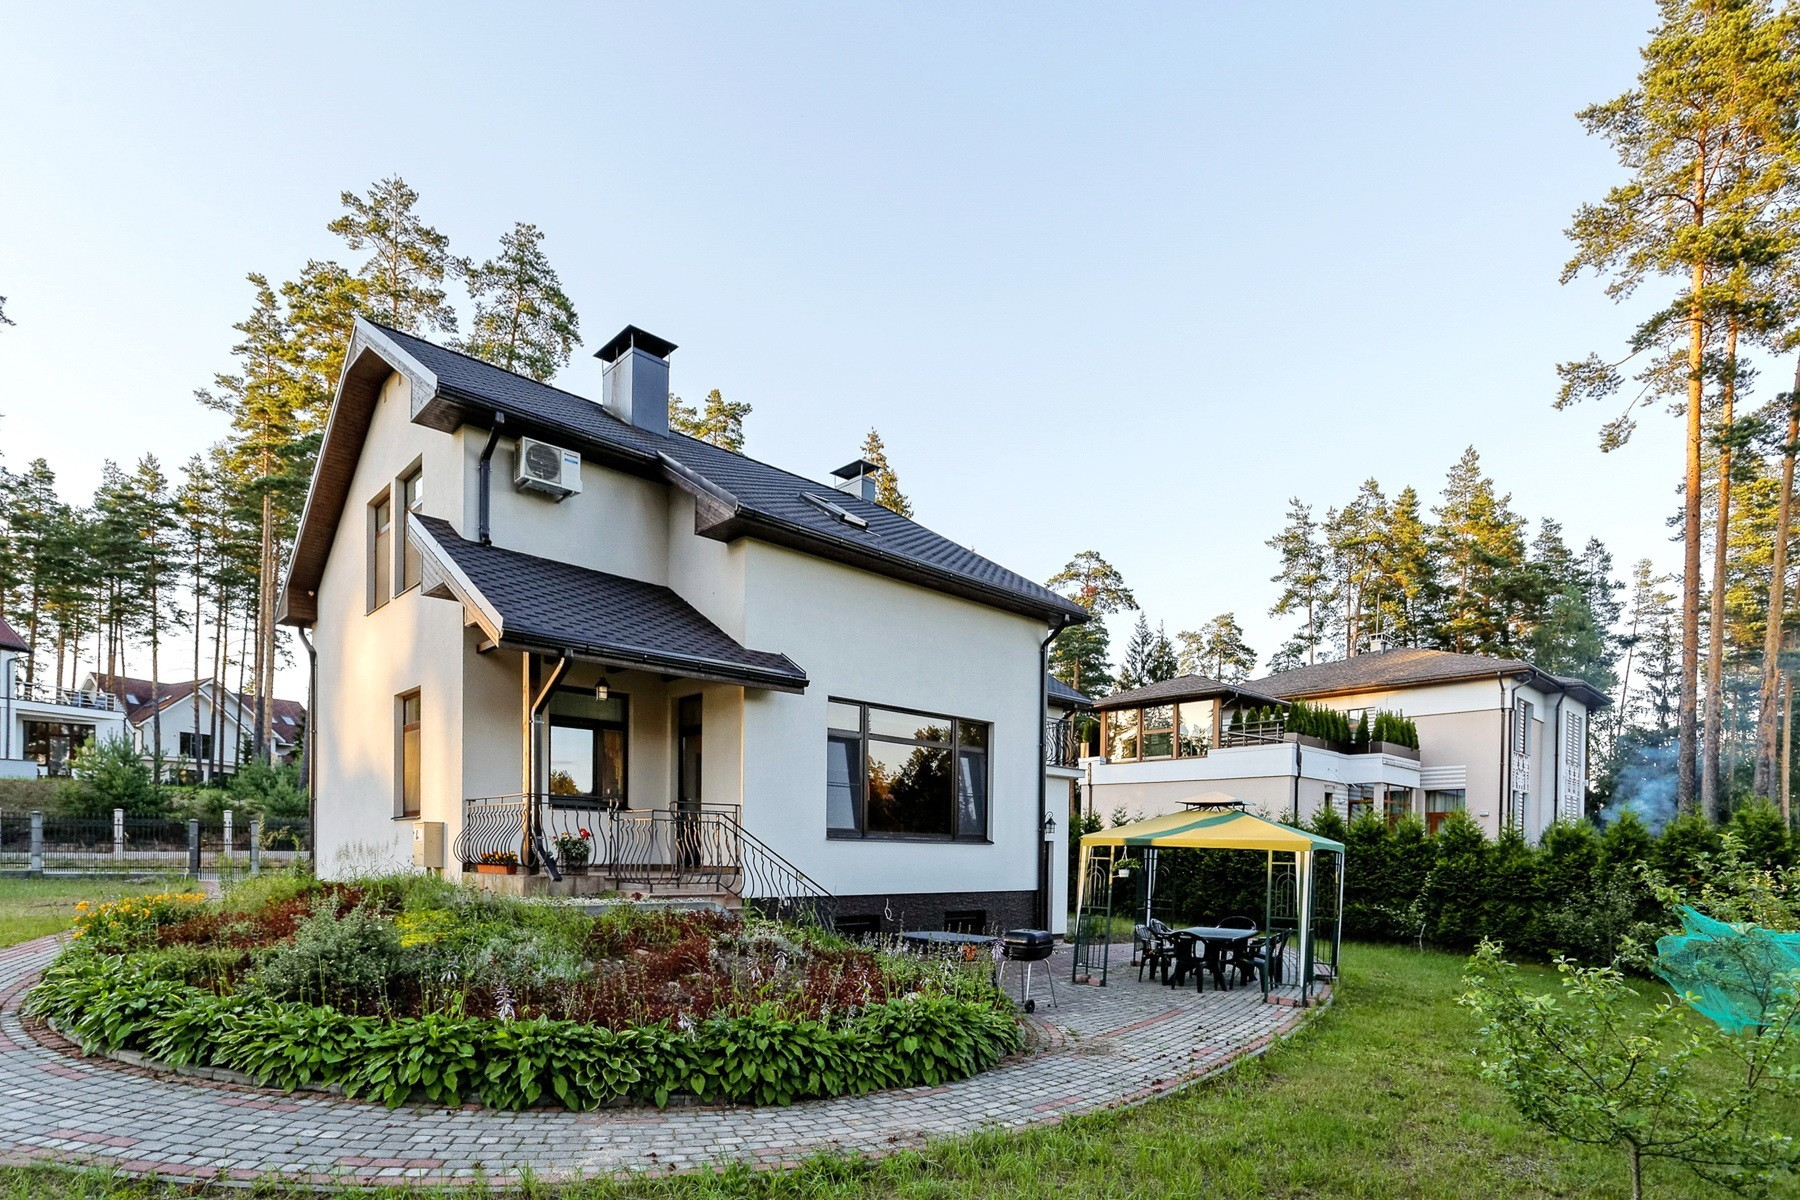 Property For Sale at Cozy private house in Sunisi village in Latvia